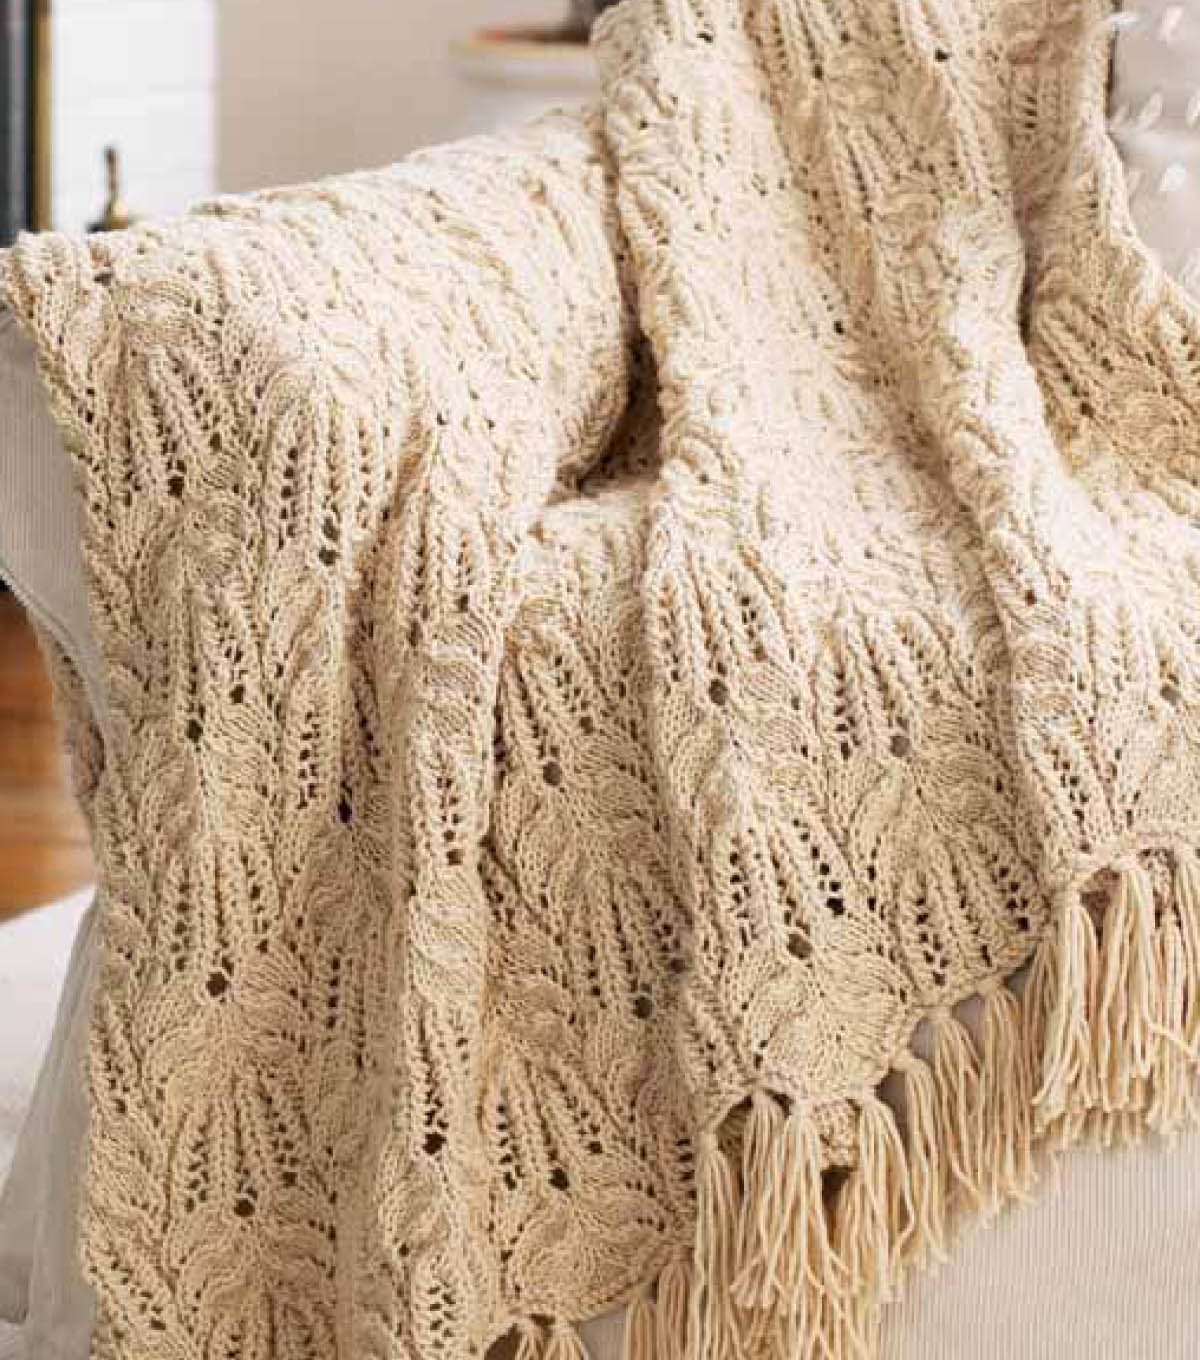 Knit Afghan Patterns Free Free Knitting Pattern Lace And Cable Afghan